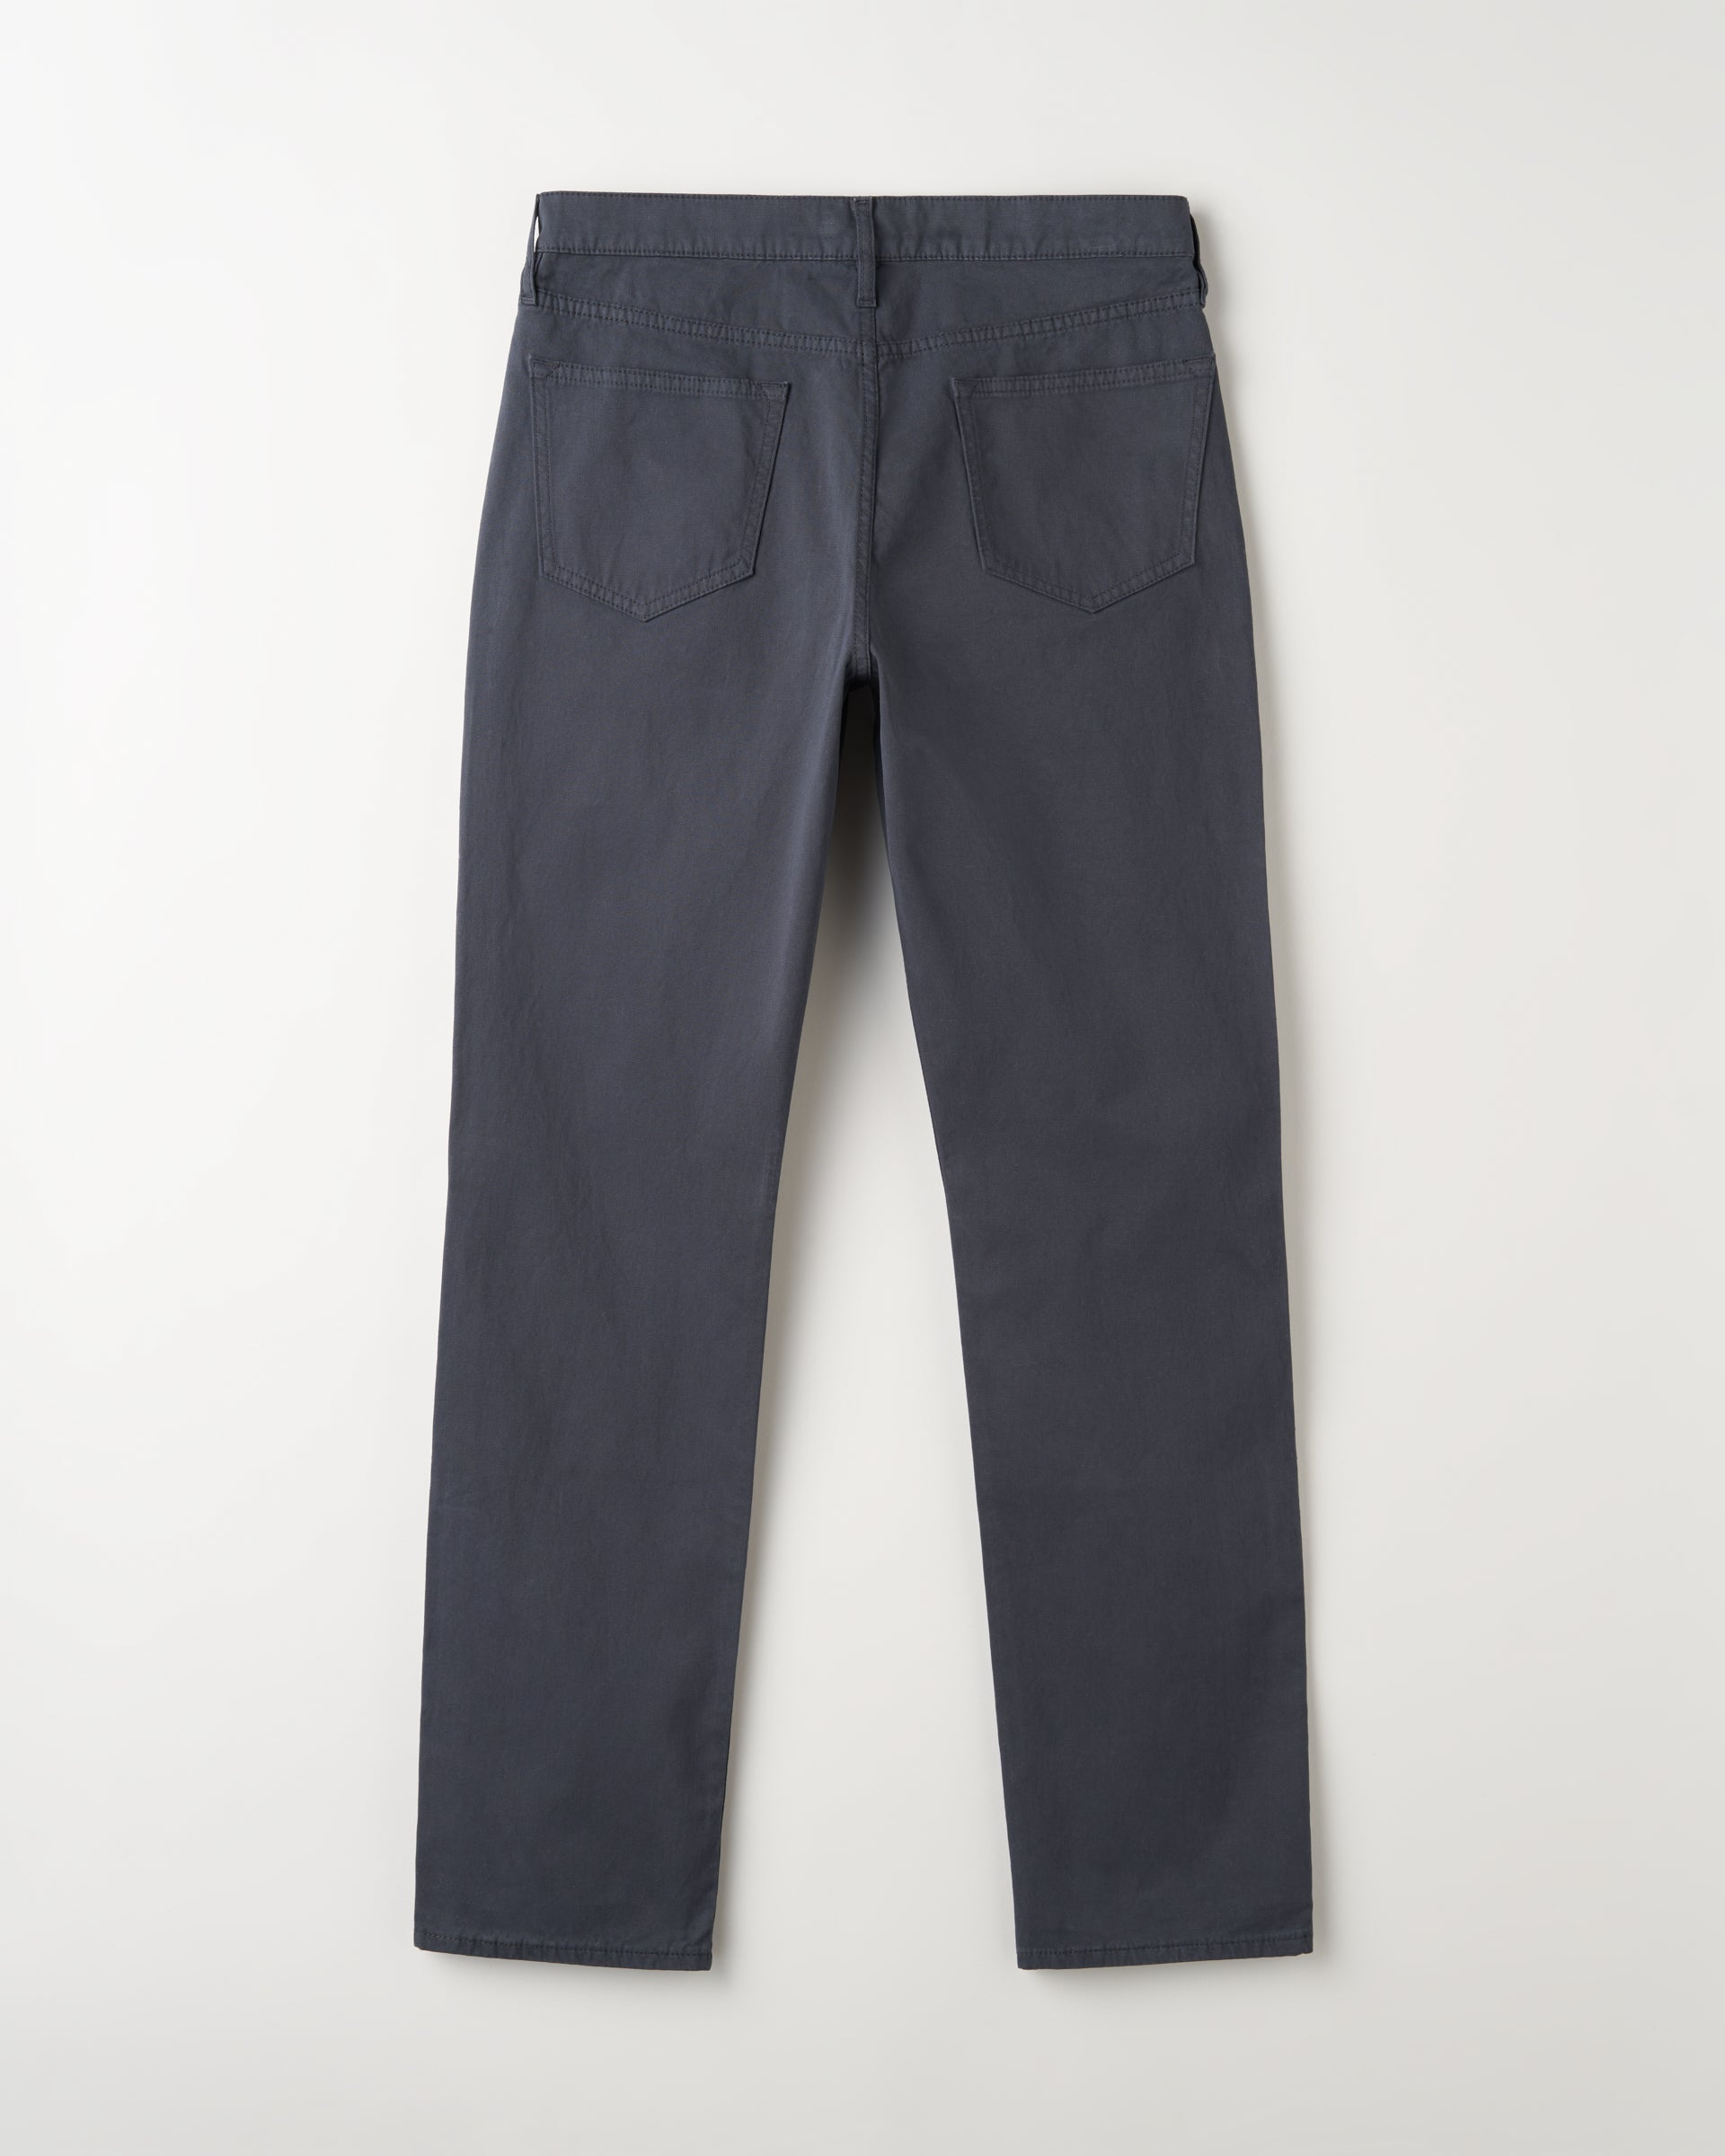 5 Pocket Trouser - Dark Grey